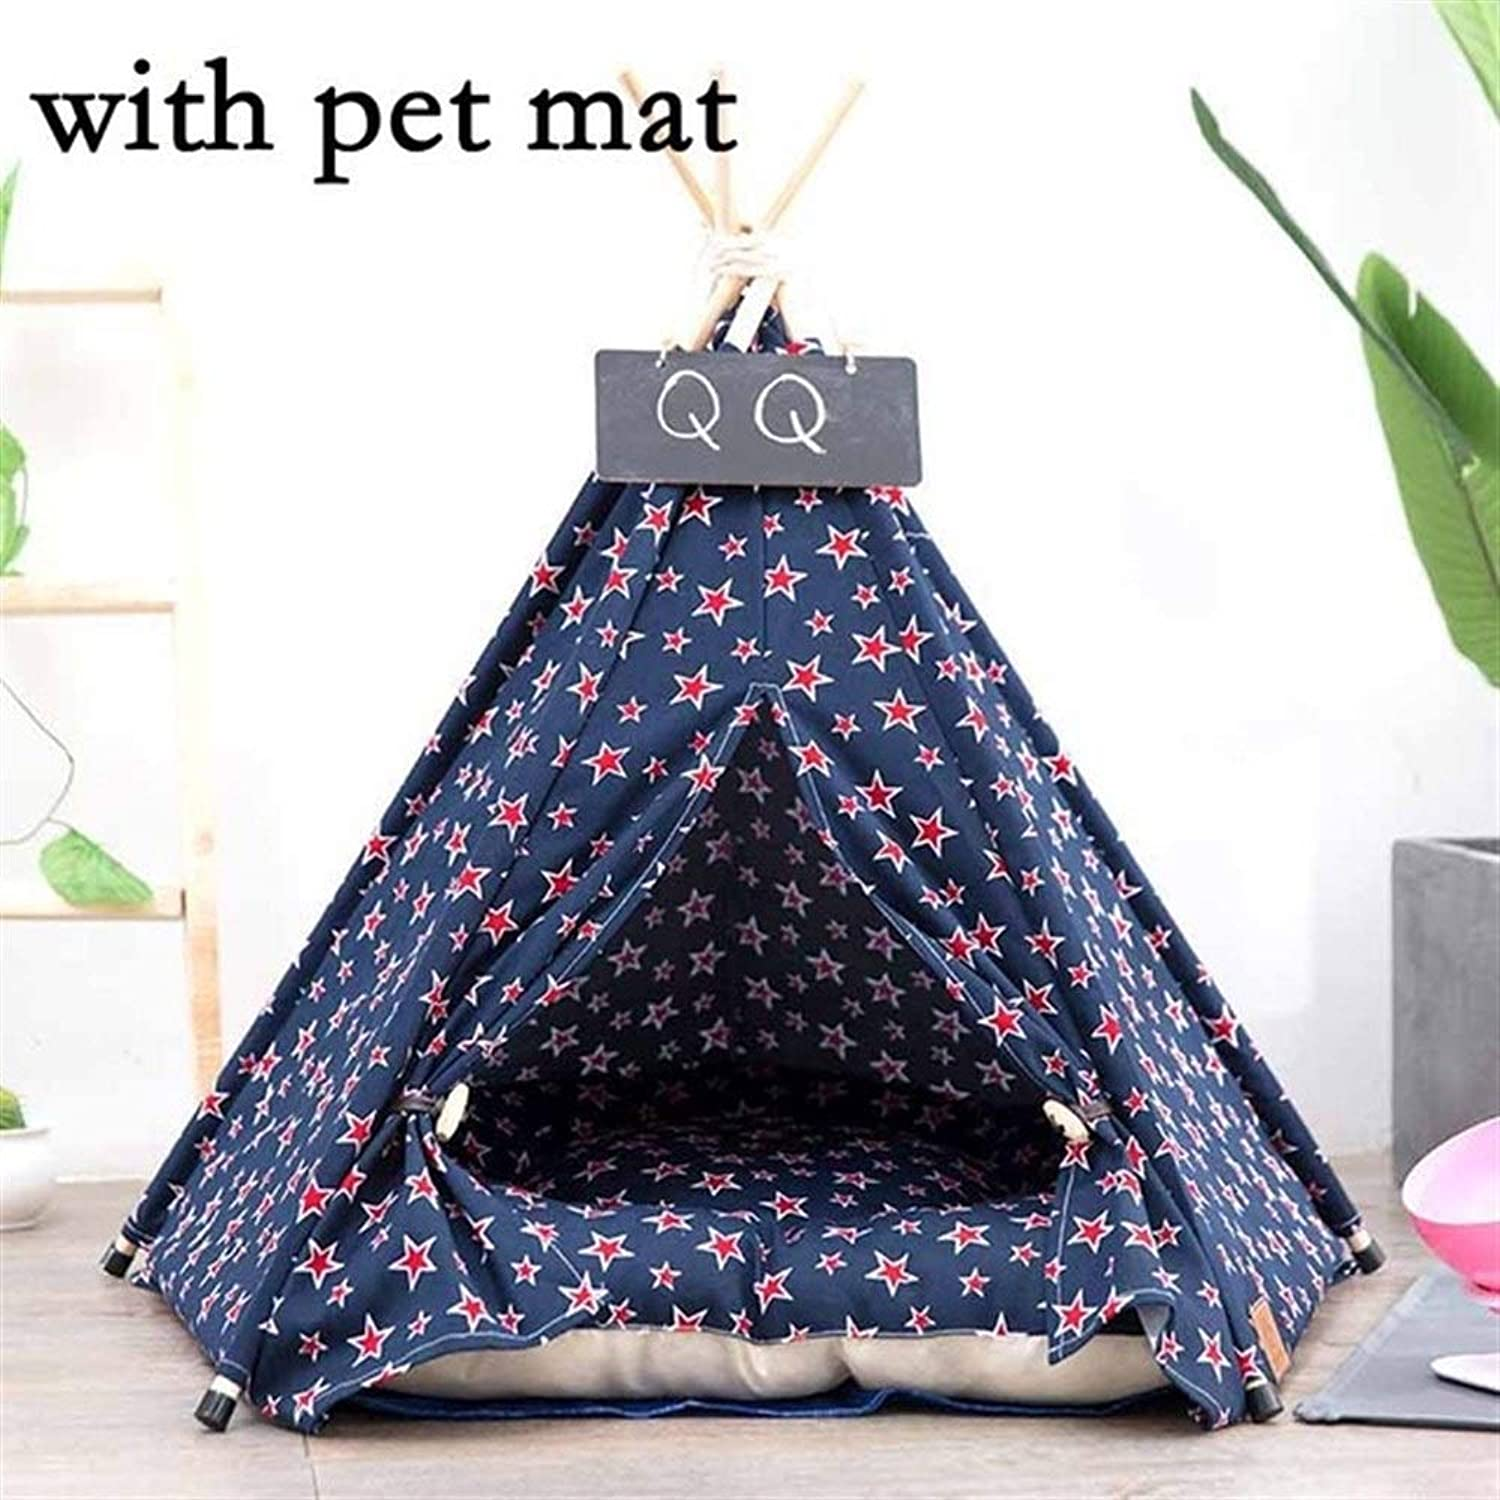 Stripe Teepee Pet Washable Portable House Toy Cat Bed Dog